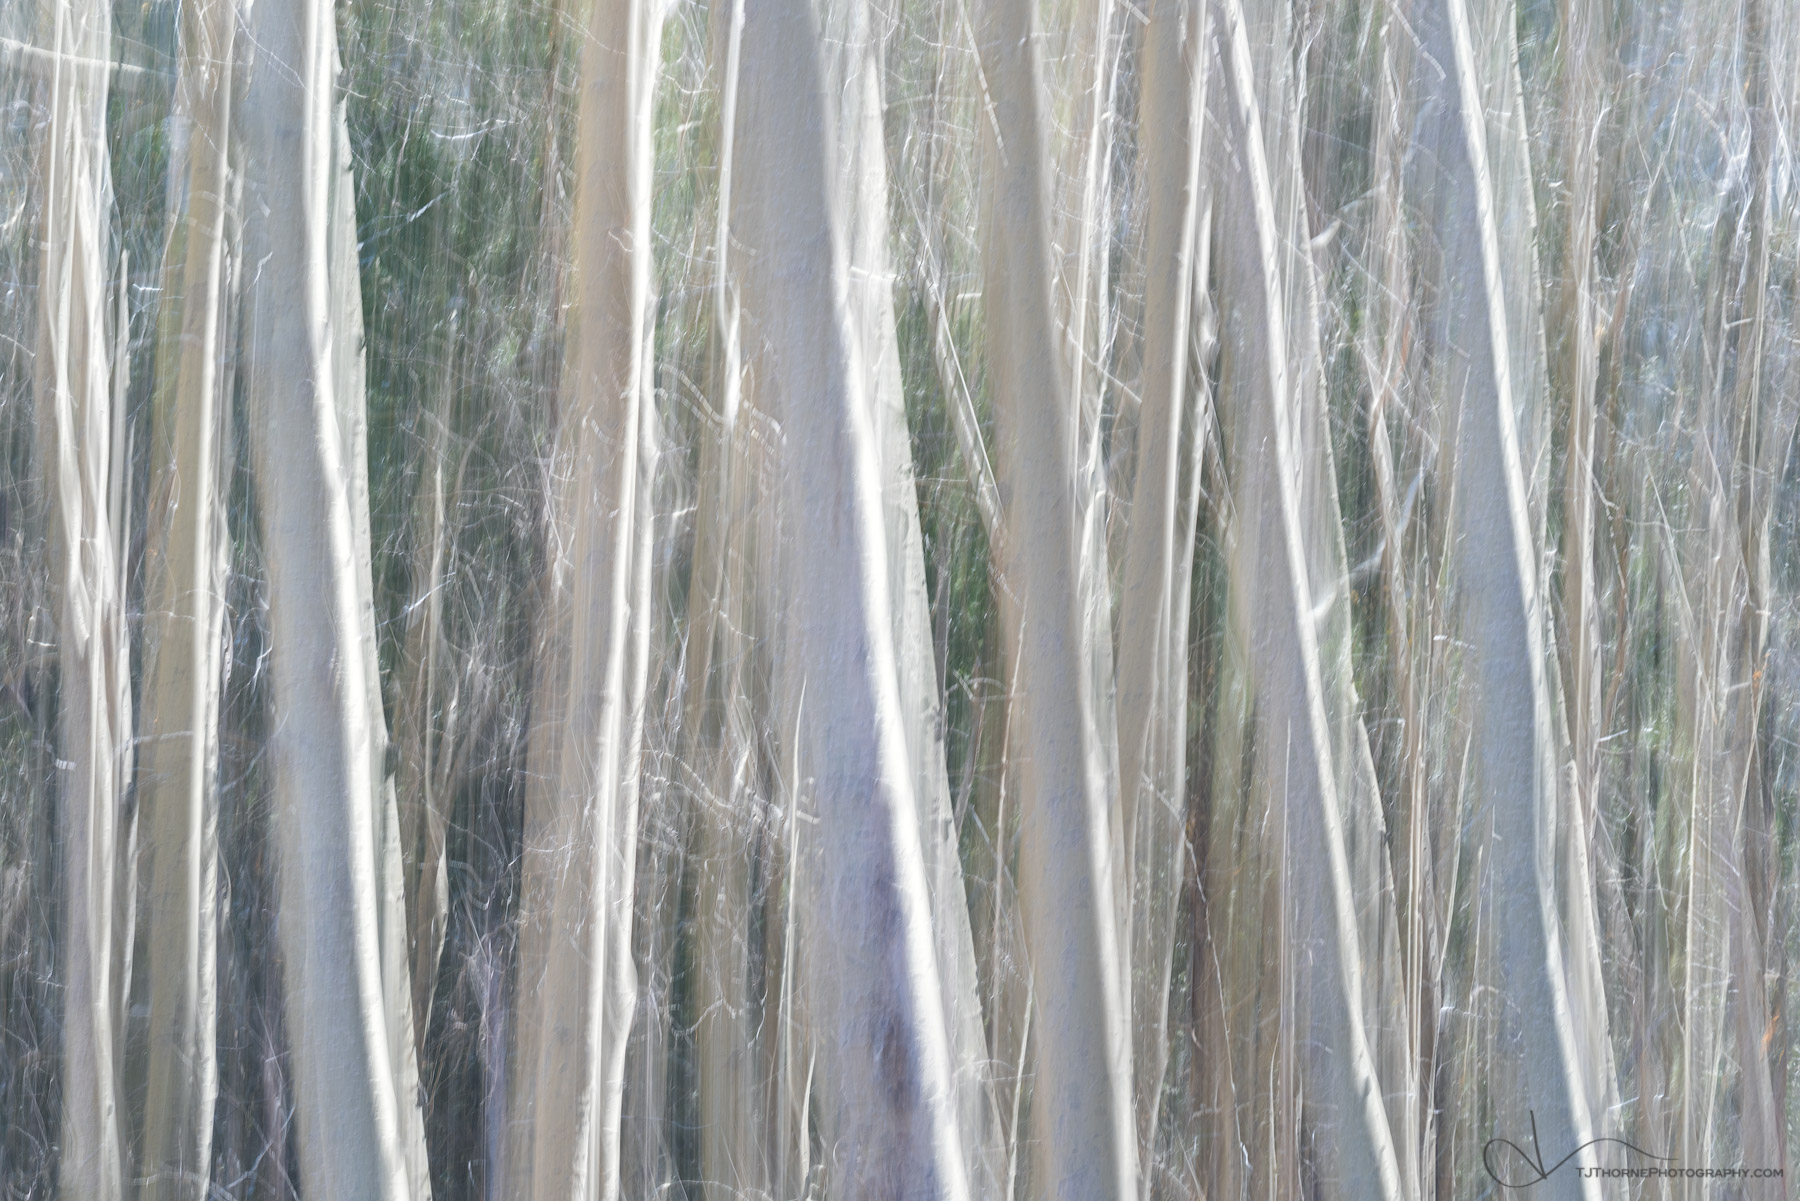 trees, forest, abstract, photo